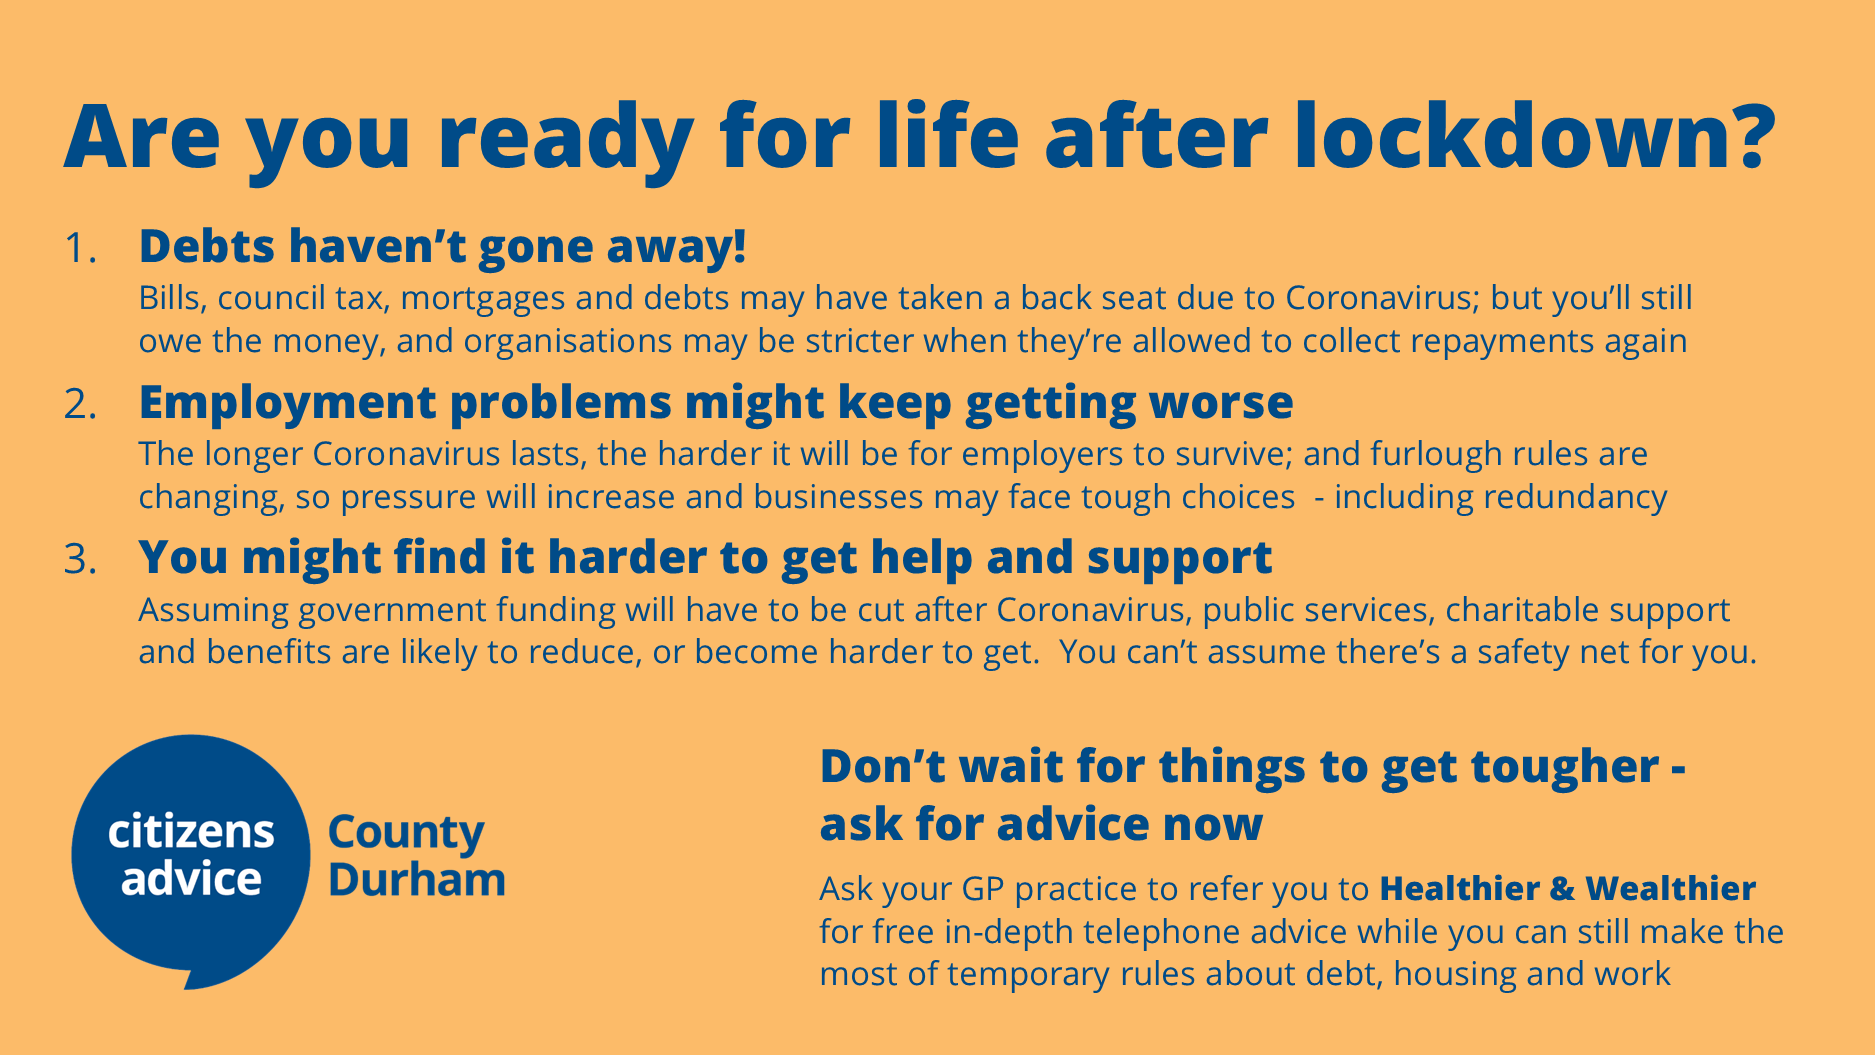 Life after lockdown - Debts, Employment problems, support. If you need advice contact Citizens Advice County Durham